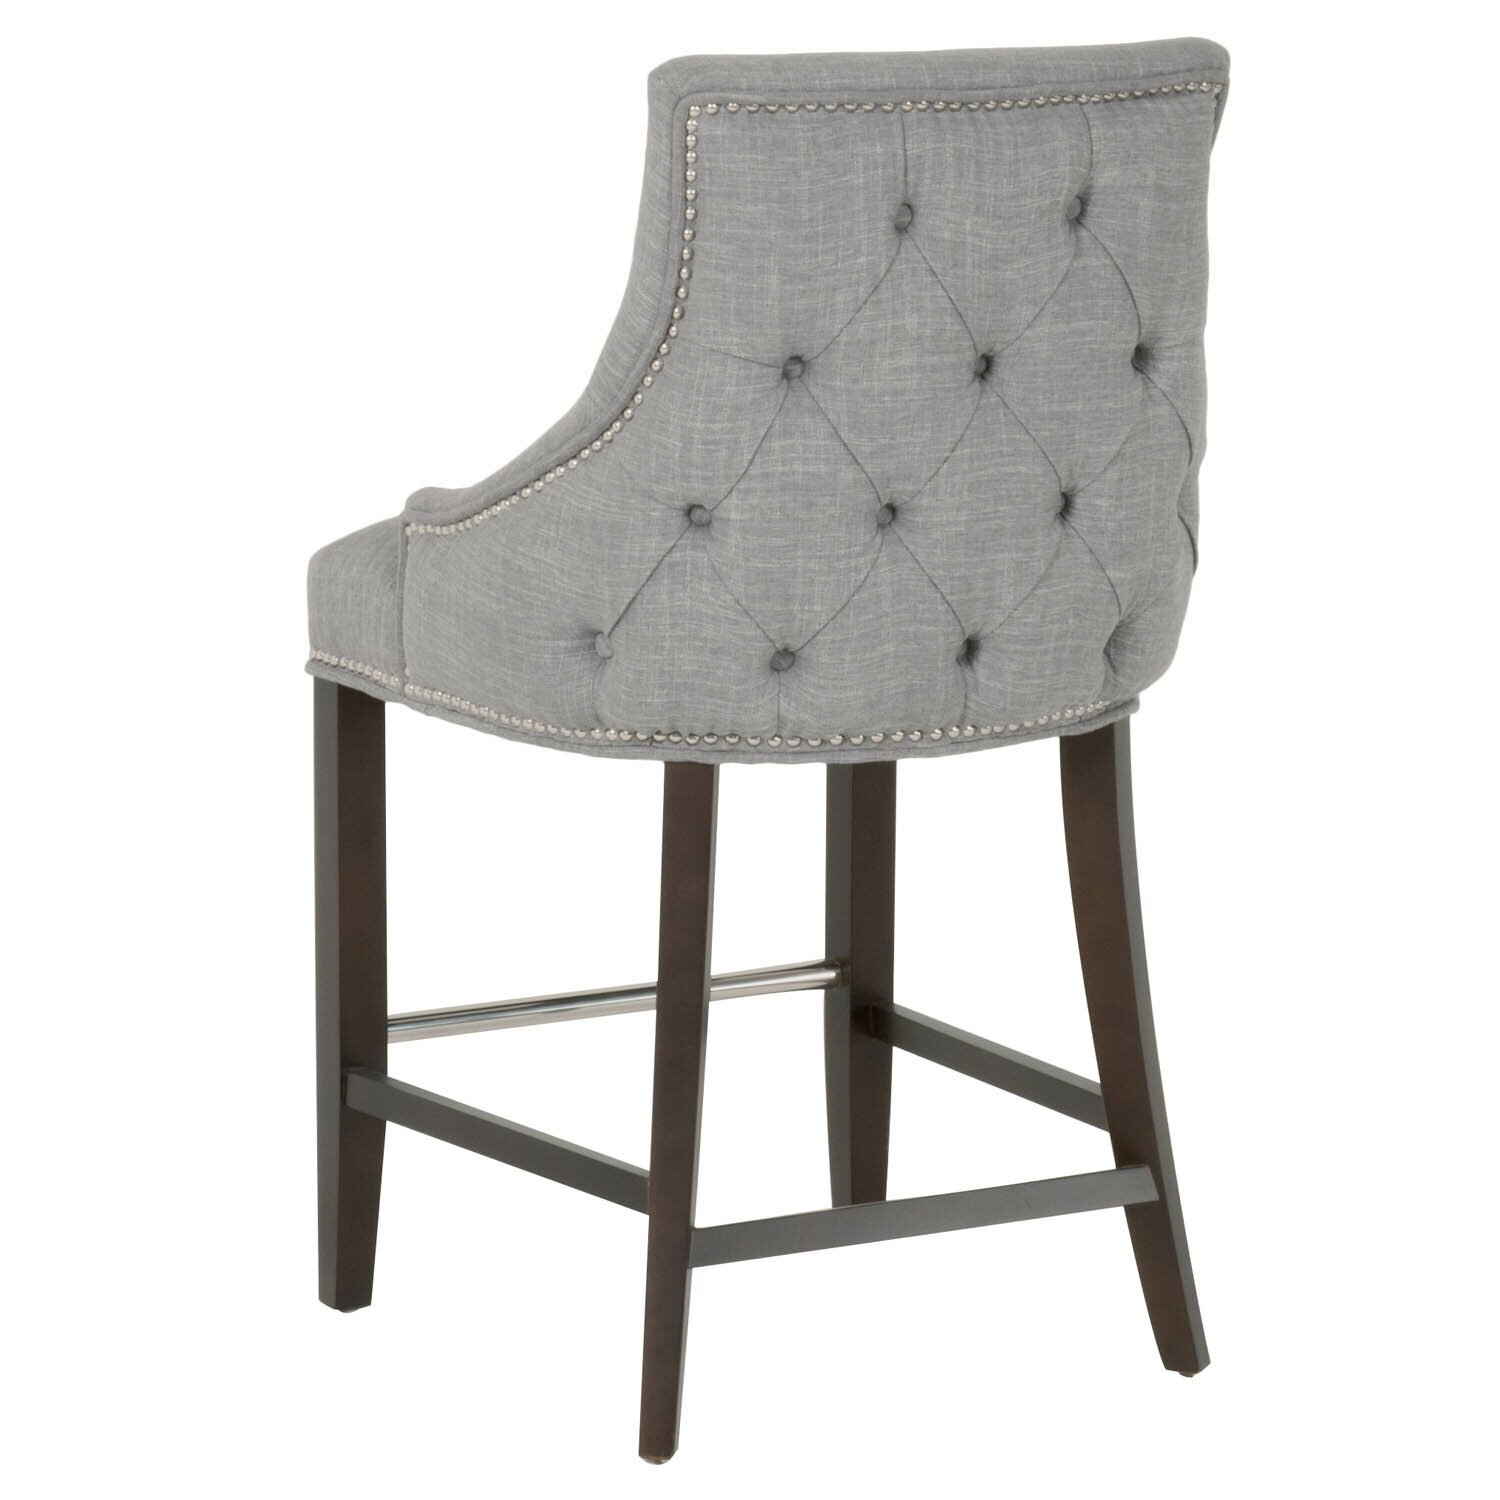 "Orient Express Furniture Avenue 26"" Bar Stool with Cushion ..."